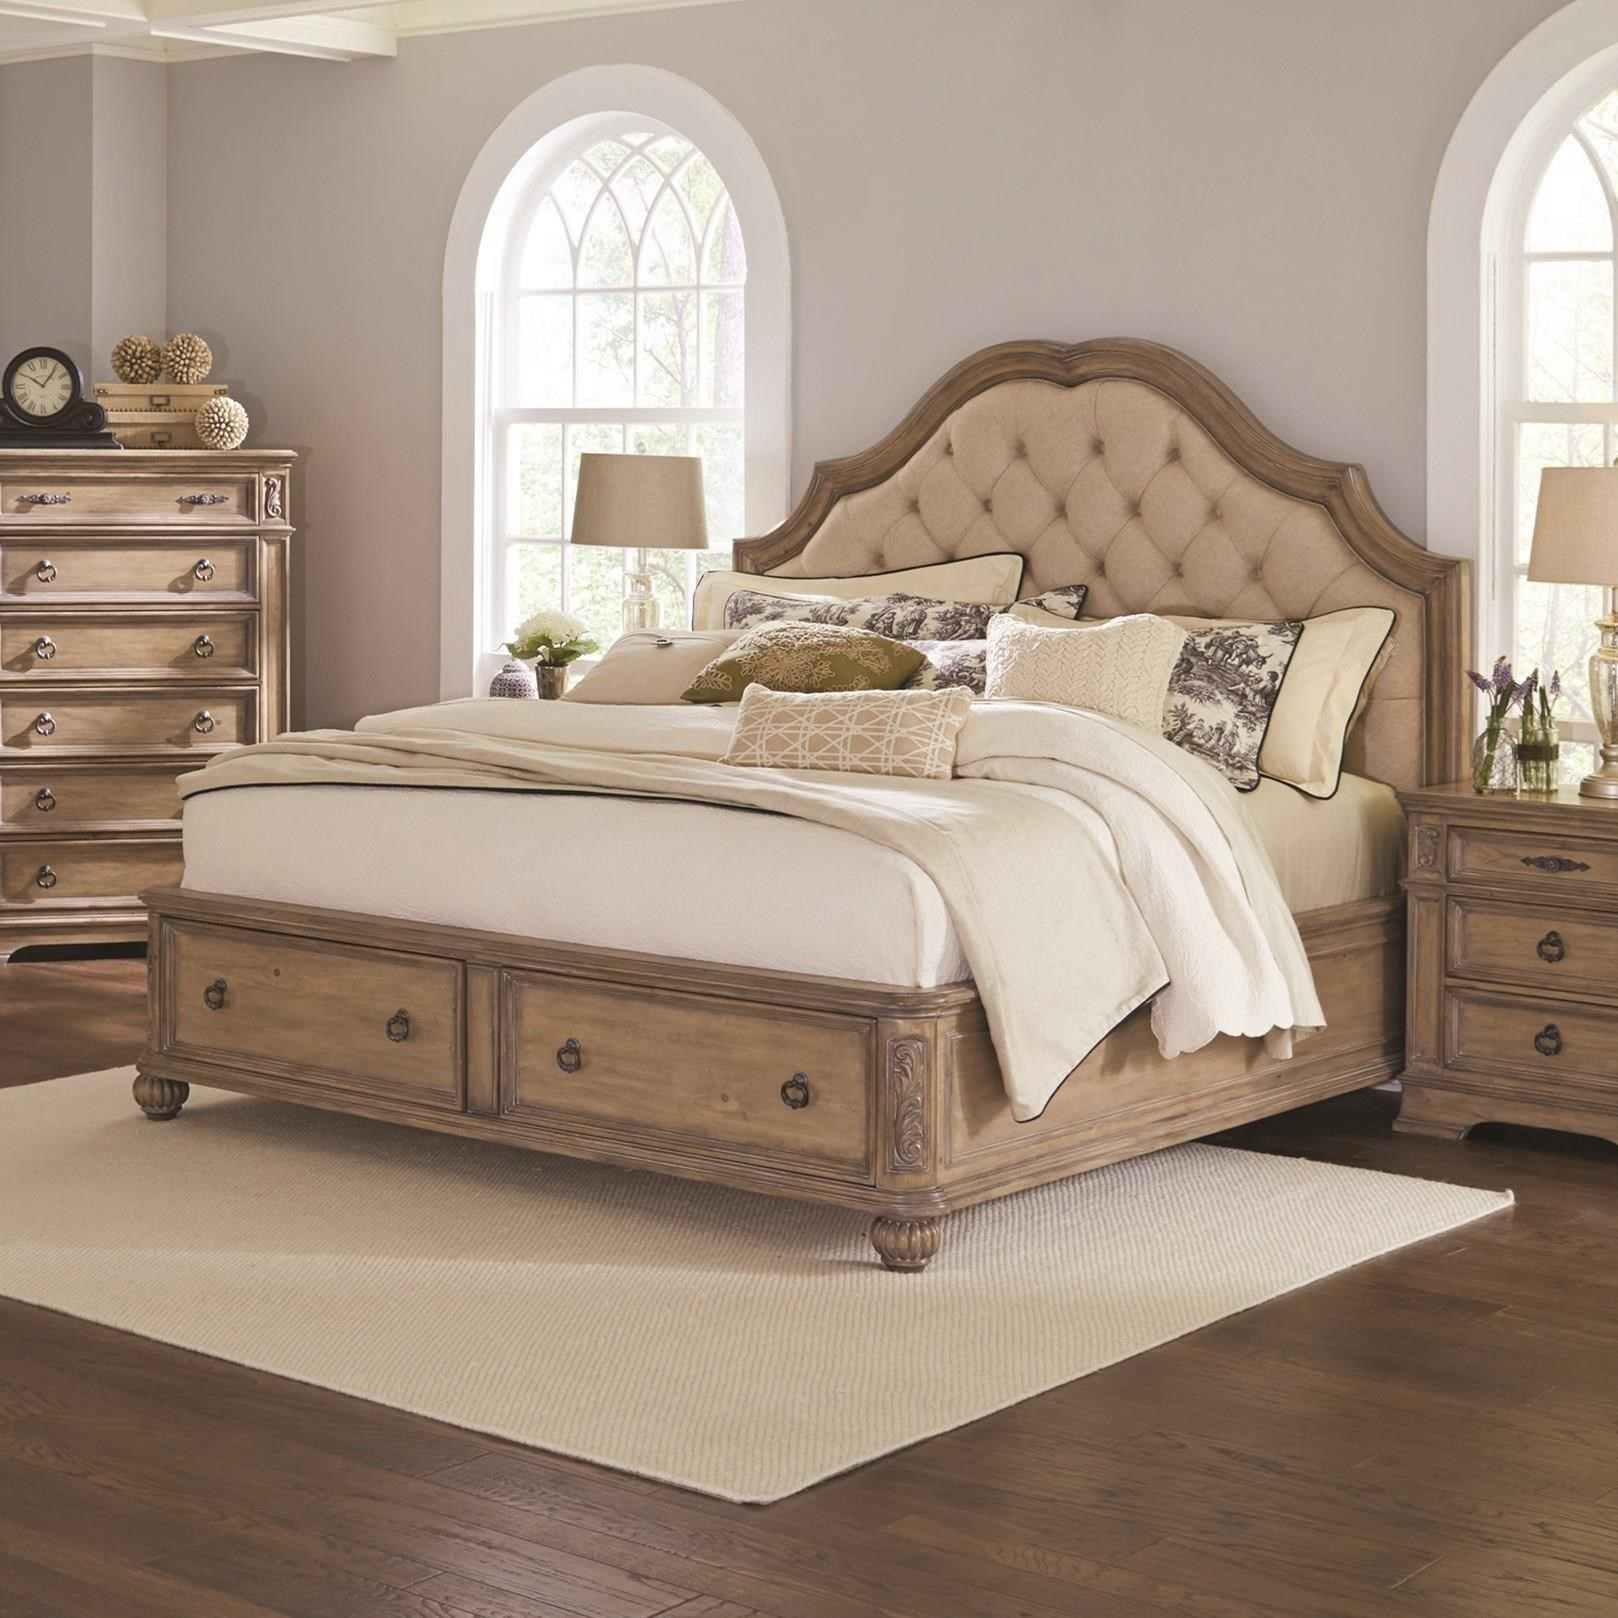 Ilana Queen Storage Bed by Coaster at Standard Furniture